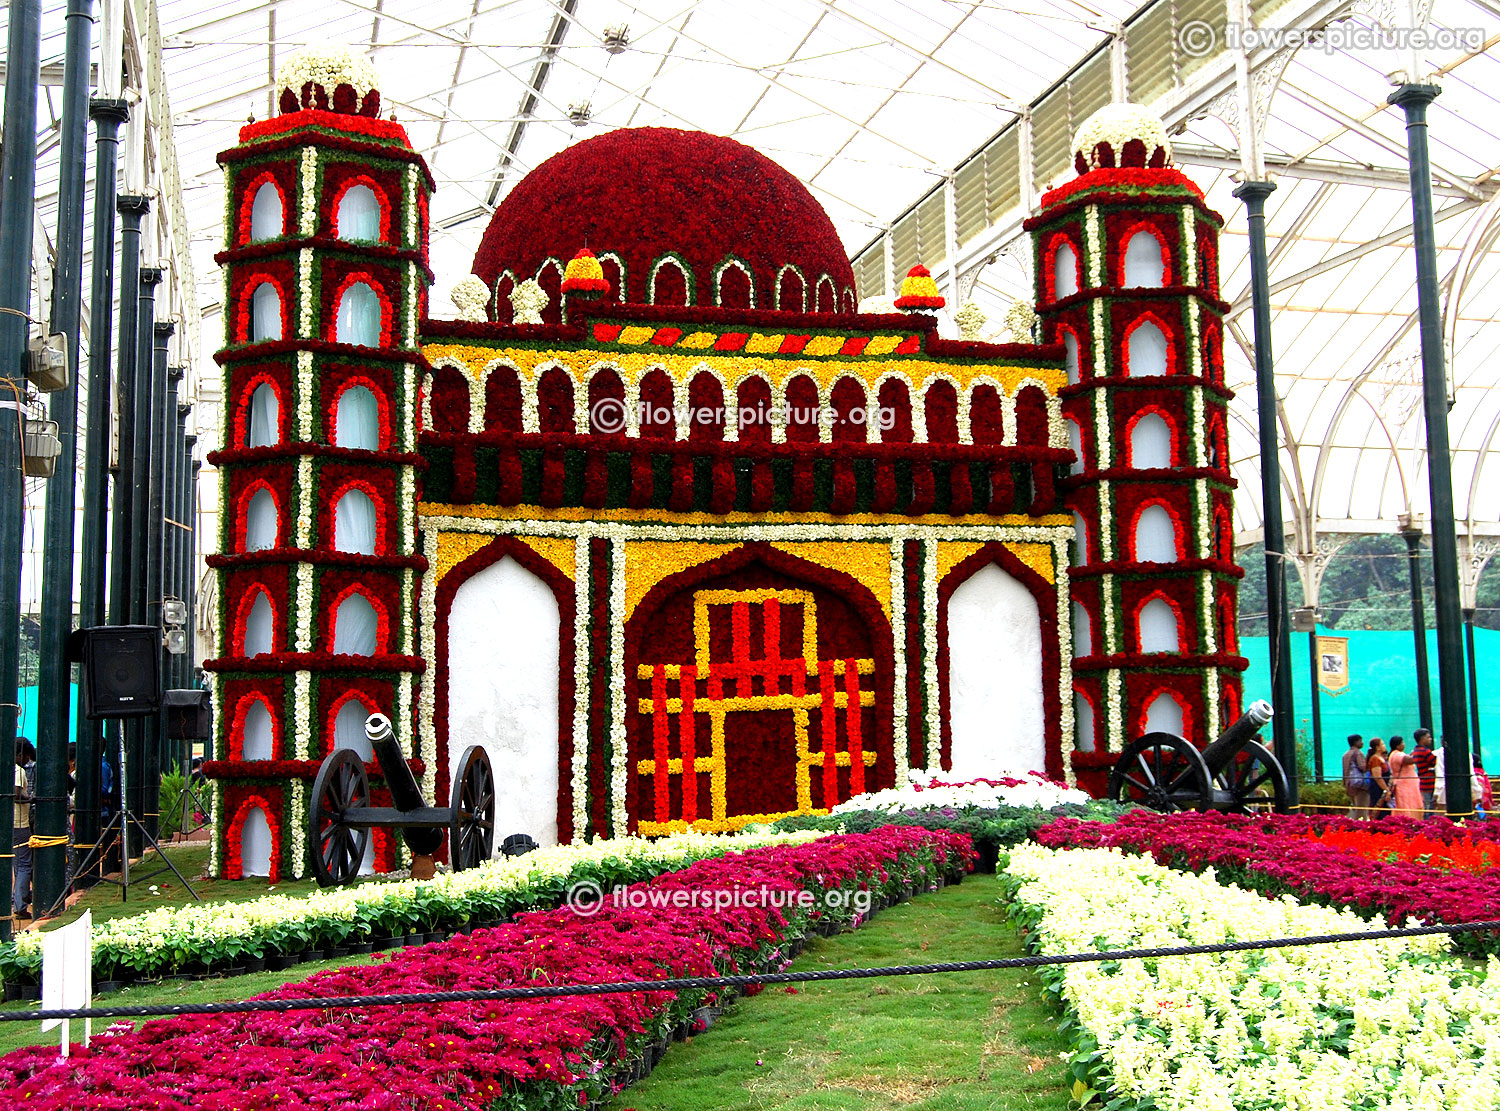 1d0d6e409039 204 th bangalore lalbagh flower festival august 2016 pictures gallery 4